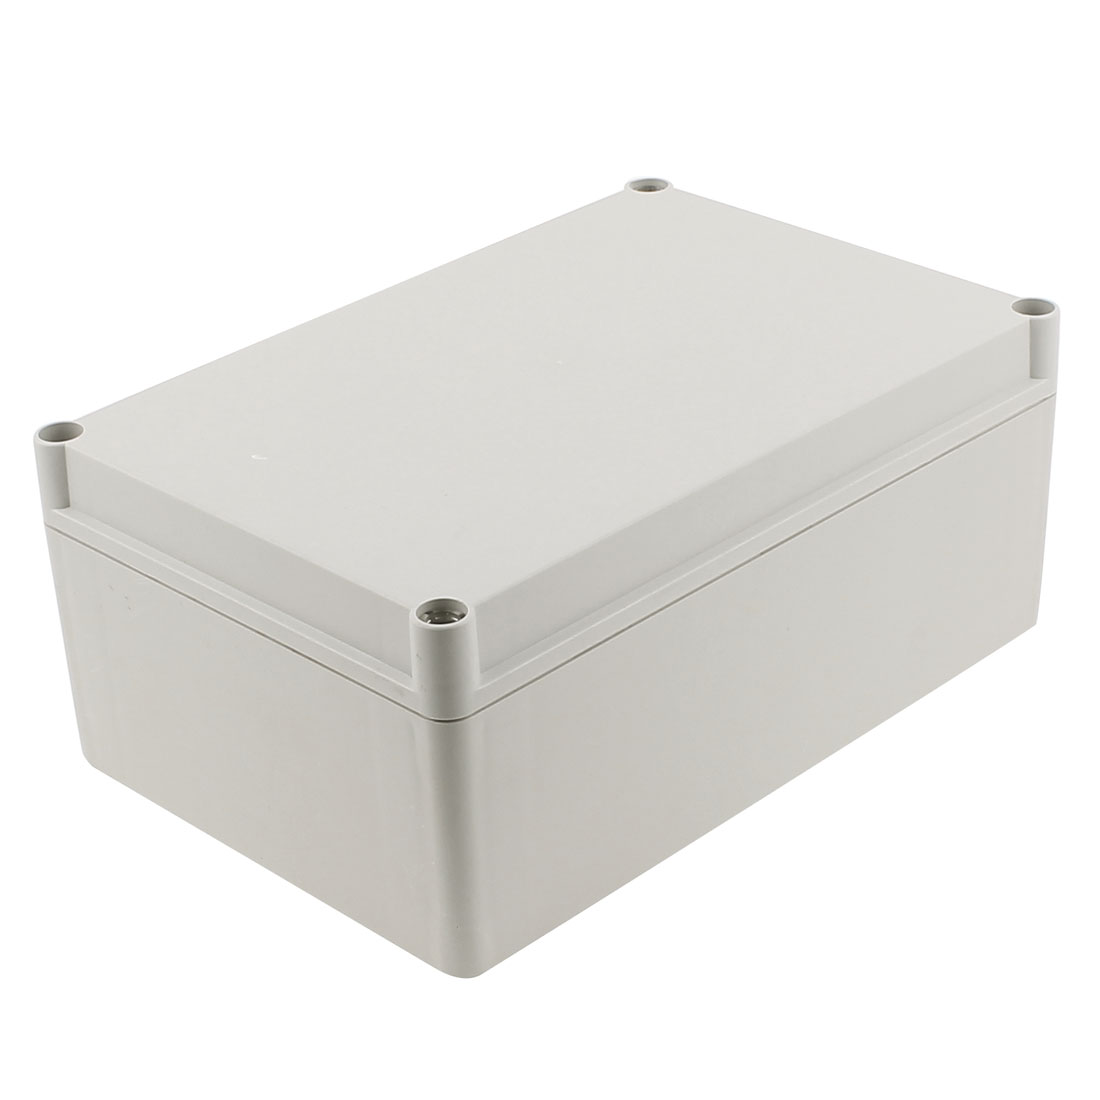 300 x 200 x 125mm Dustproof IP65 Junction Box Terminal Connecting Box Enclosure